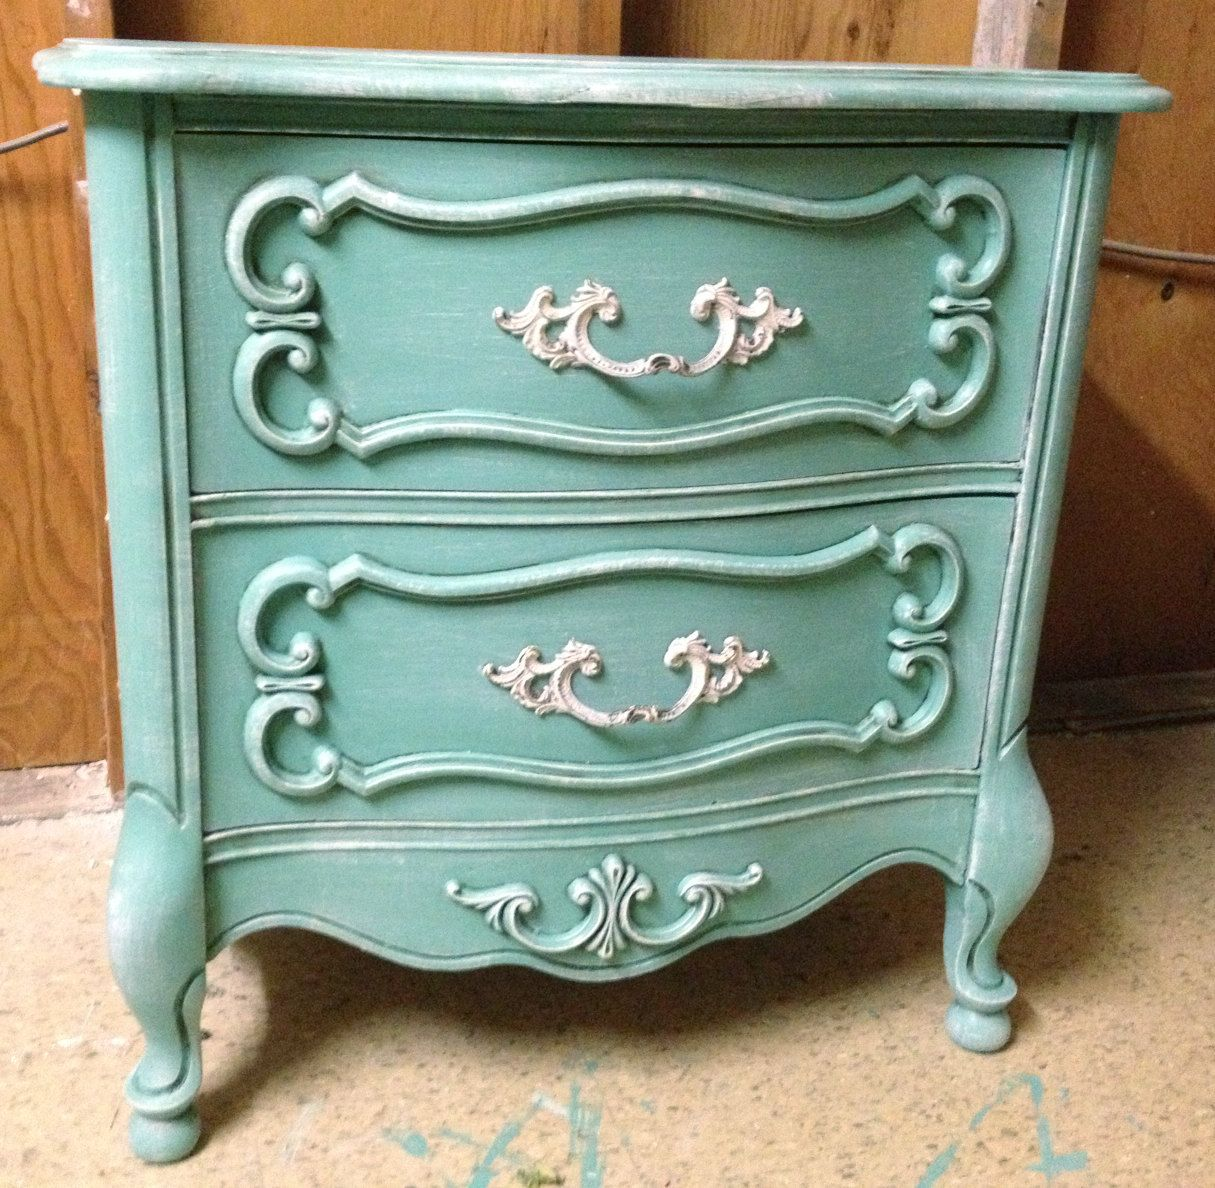 Large French Provincial Aqua Blue Nightstand Boutique Displays Boudoir Tables Double Drawer Dres With Images Diy Furniture Bedroom Boutique Display Furniture Rehab